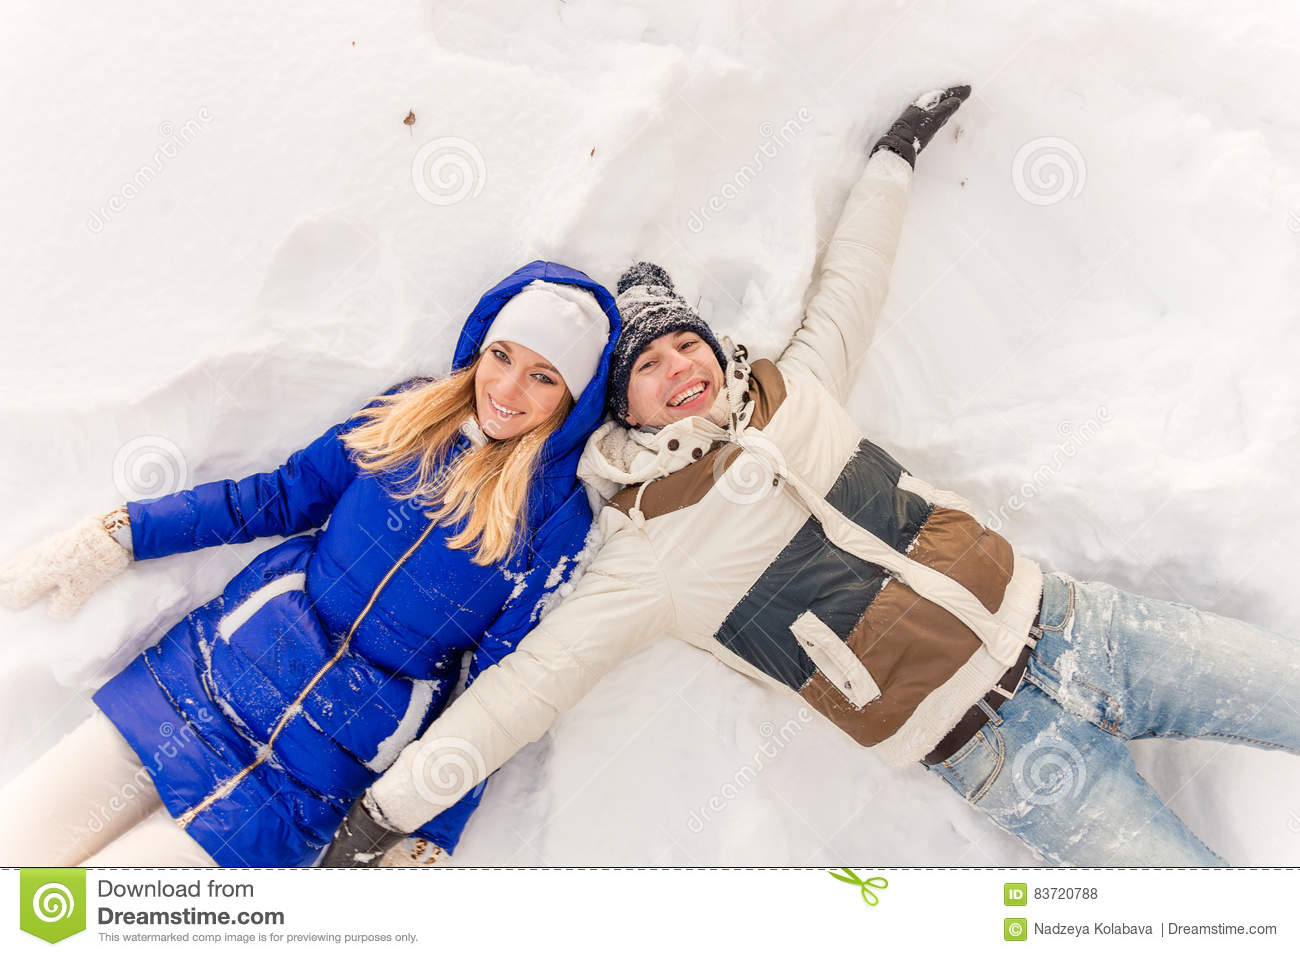 The Guy And The Girl Have A Rest In The Winter Woods. Stock Photo